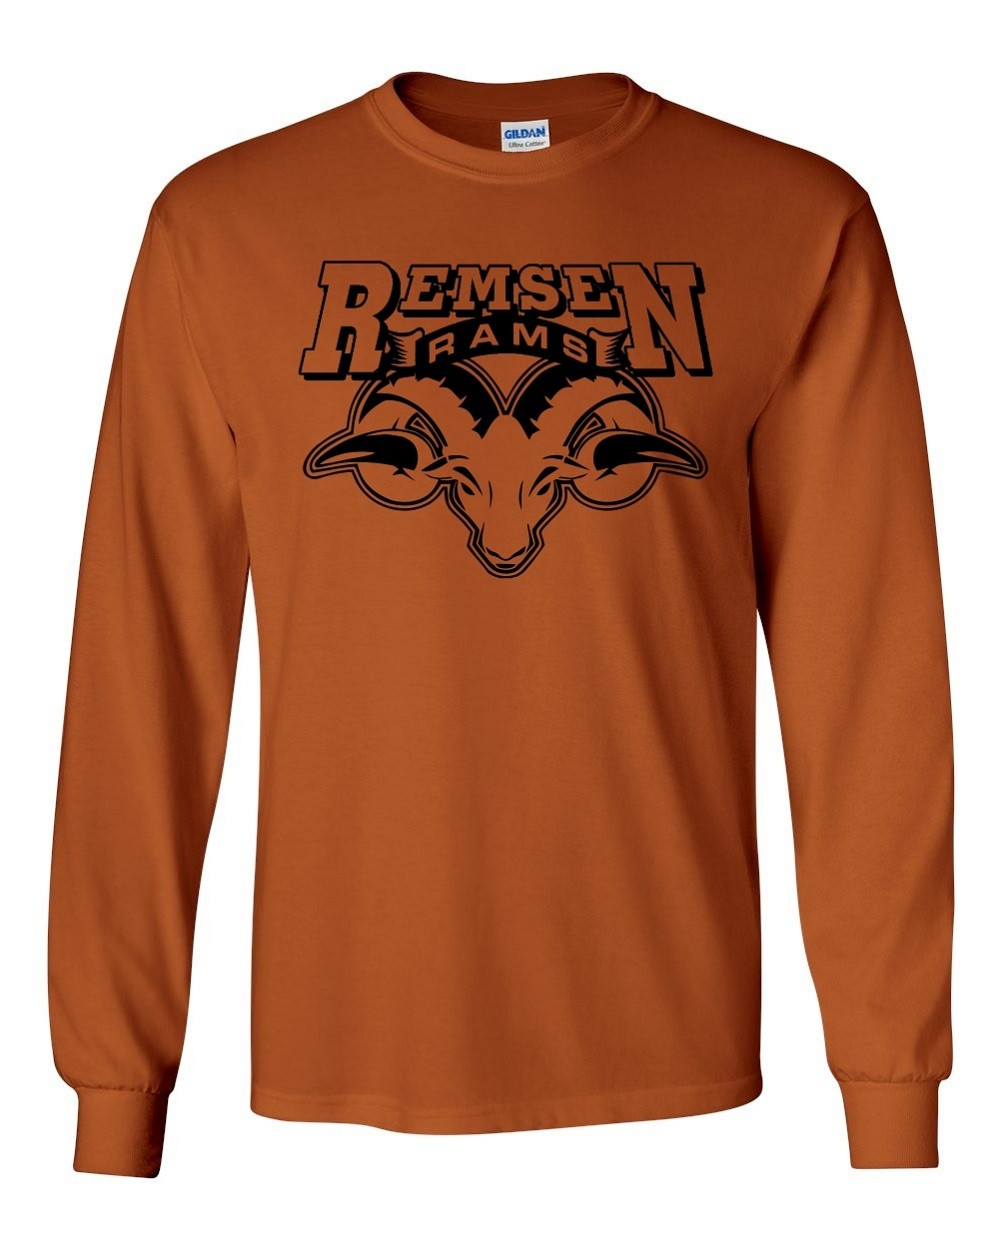 Remsen Rams Long Sleeve Tee